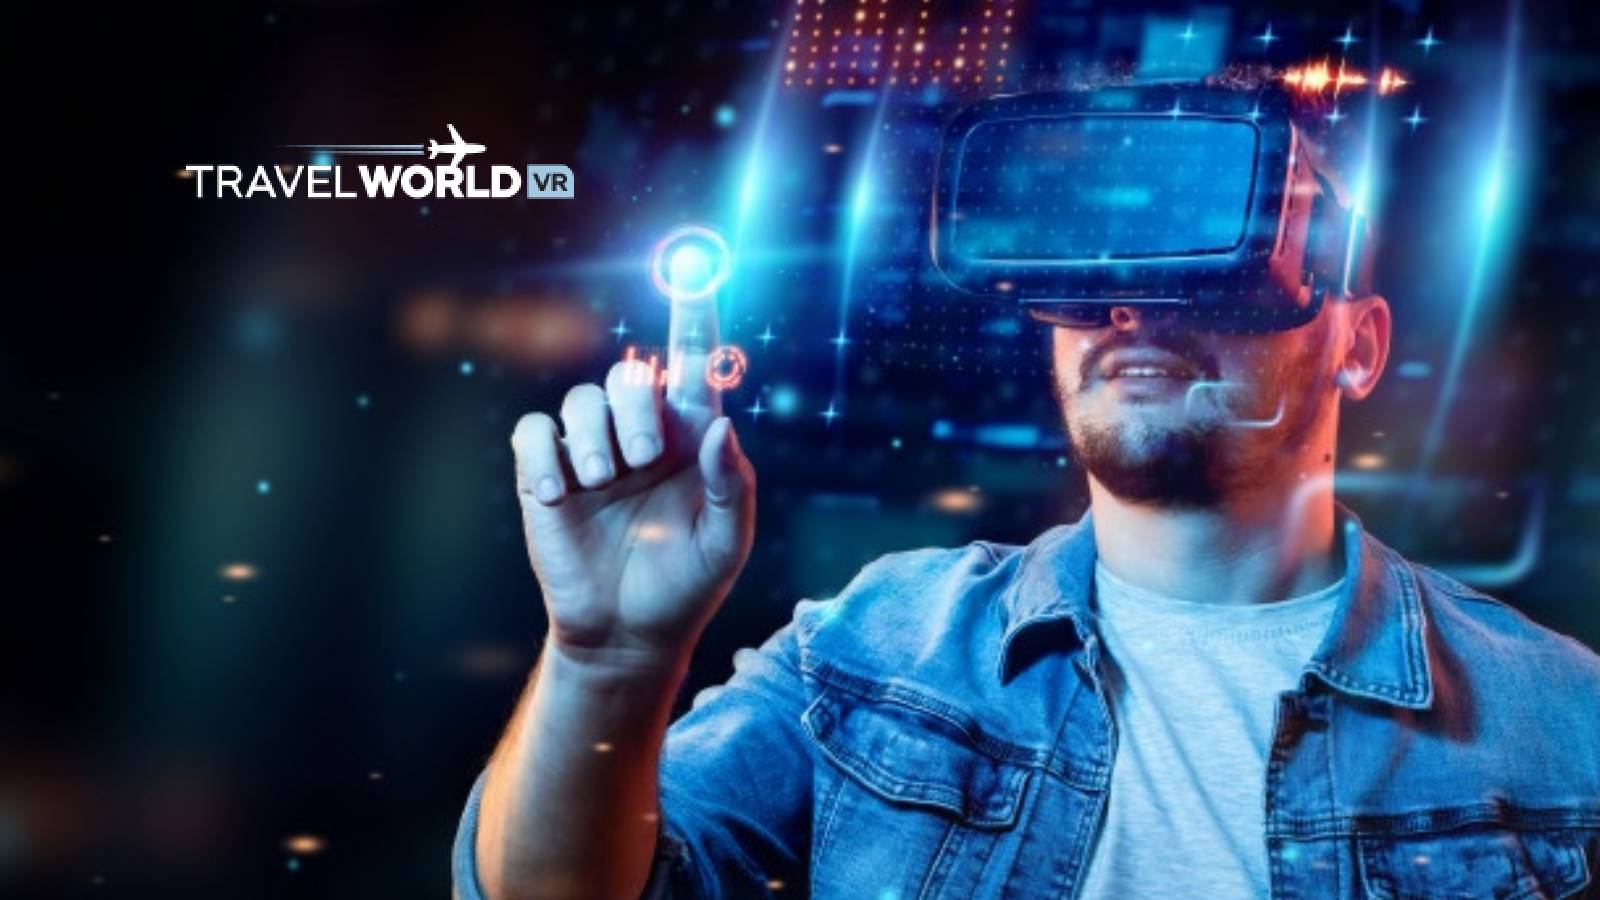 Travel World VR Launches Virtual Reality App